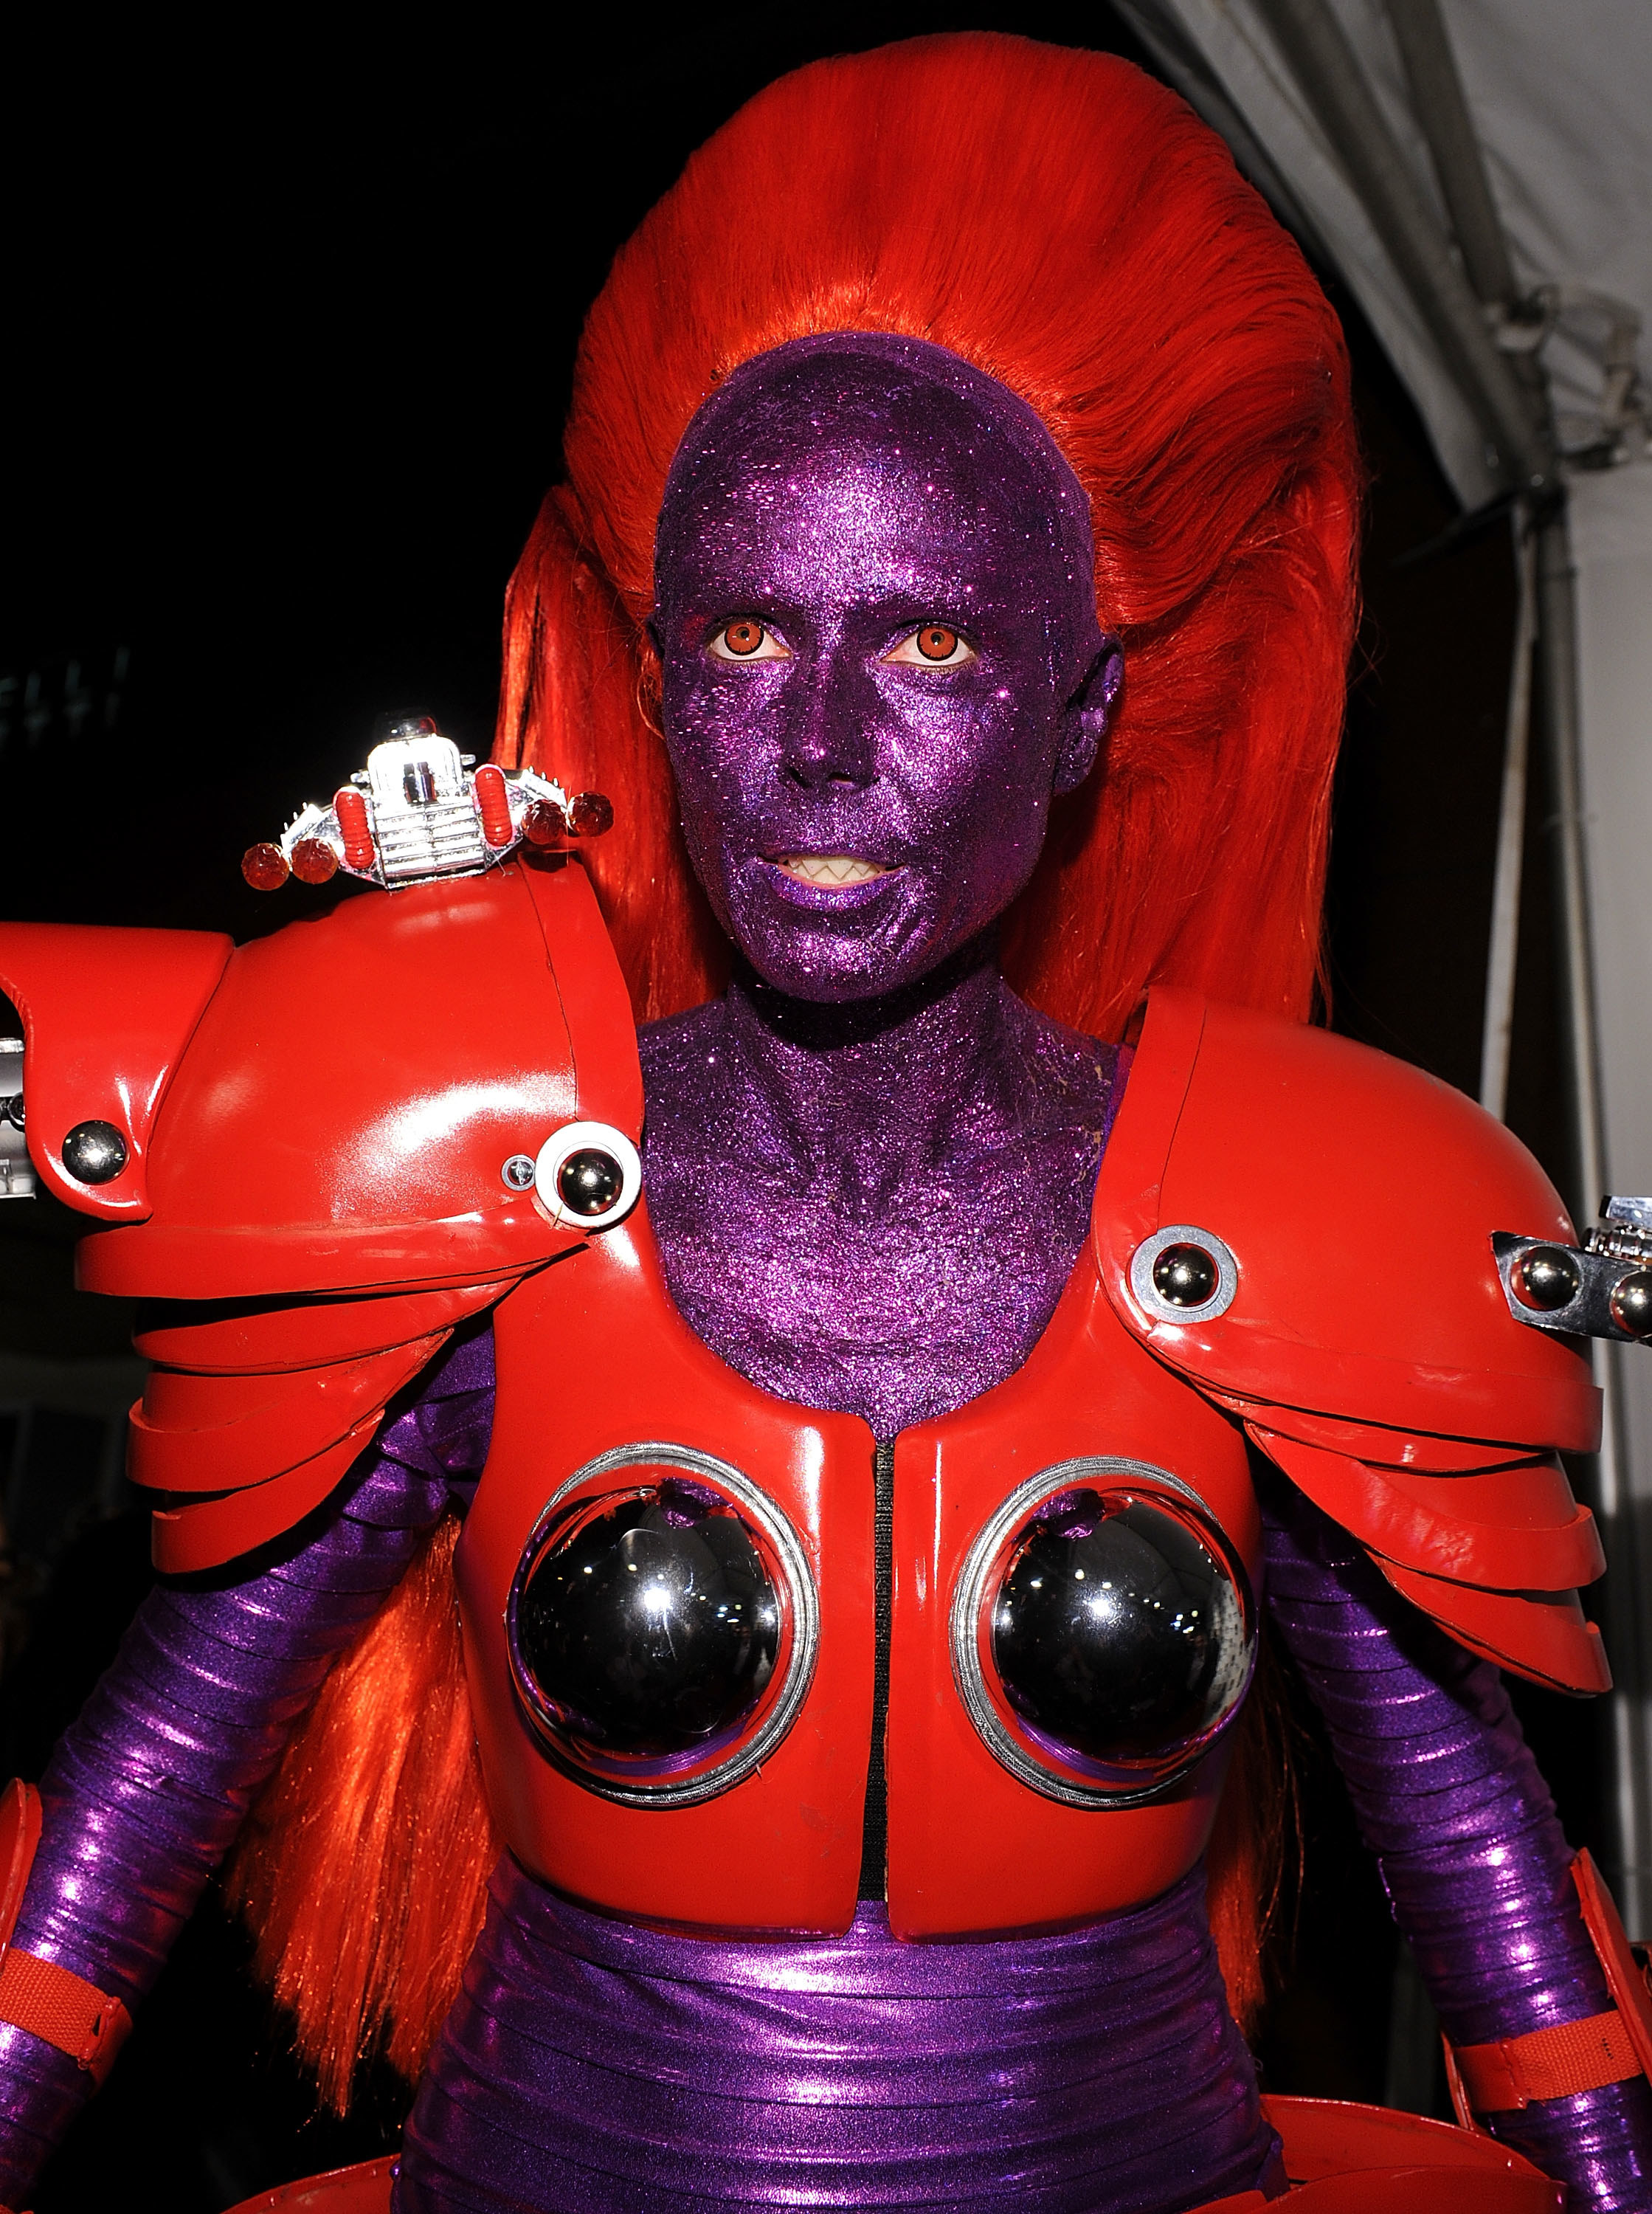 Heidi Klum dressed as a robot transformer in purple and red.